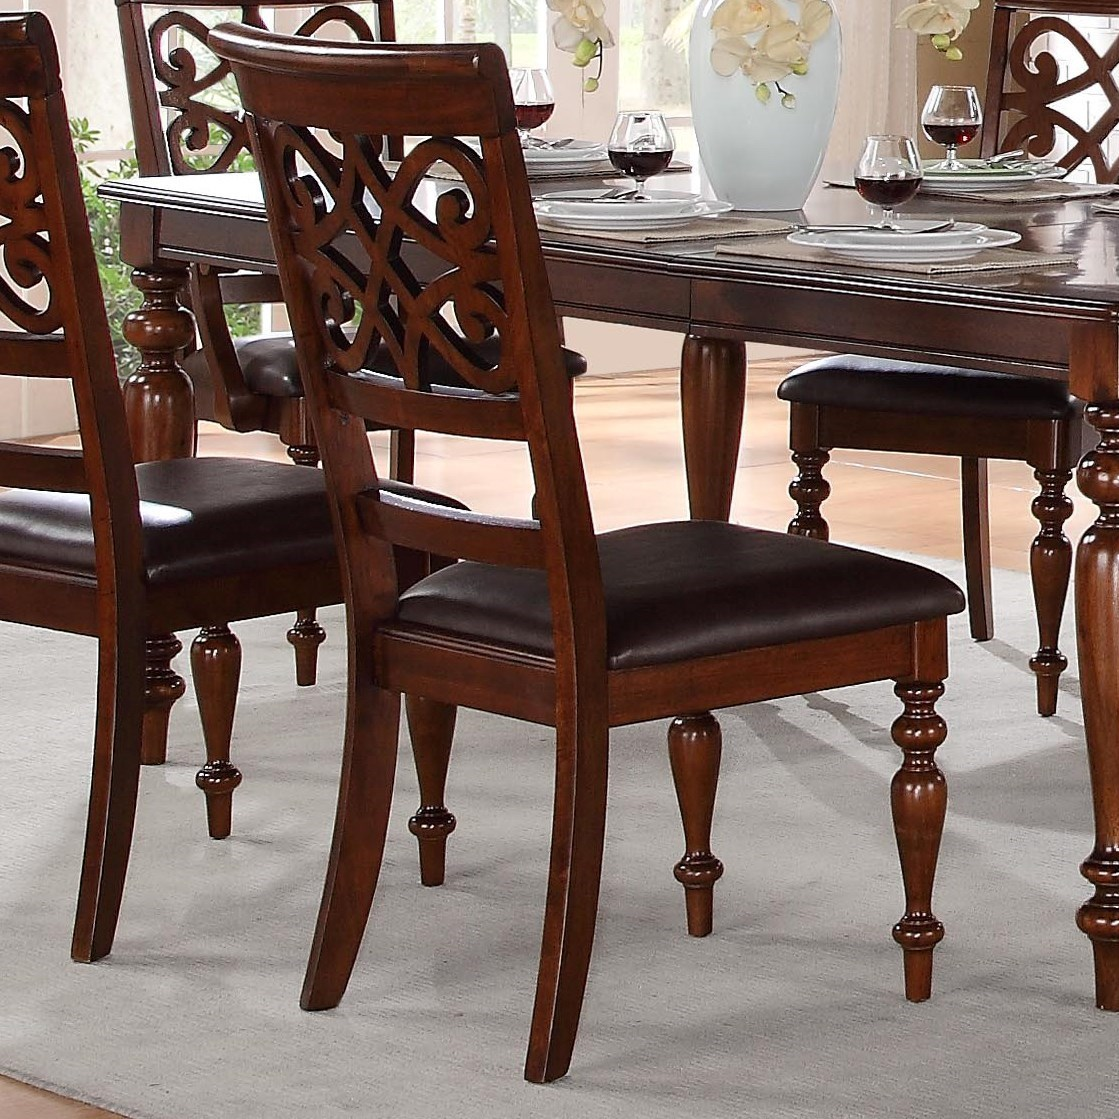 Side Chairs For Dining Room: Homelegance Creswell Traditional Dining Side Chair With